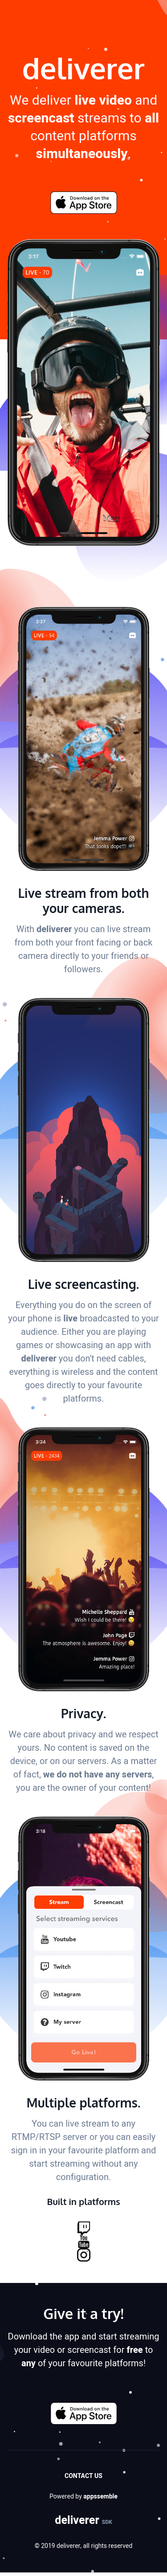 Example of Design for Arts & Entertainment, TV & Video, Online Video, Mobile Landing Page by deliverer.live | Mobile Landing Page Design